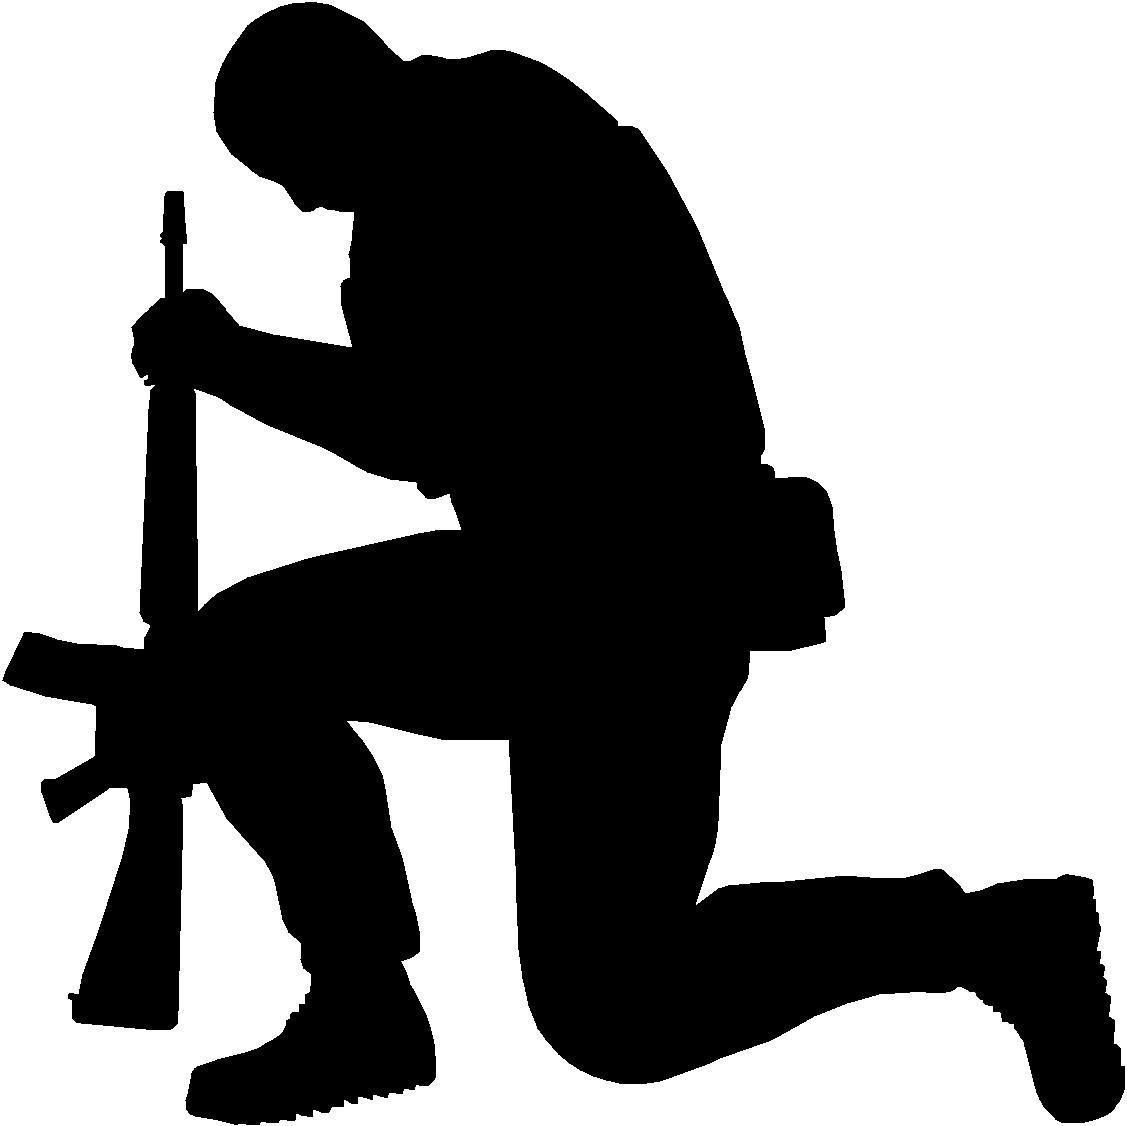 soldier praying silhouette silhouette of a soldier kneeling photograph by oleg zabielin silhouette praying soldier